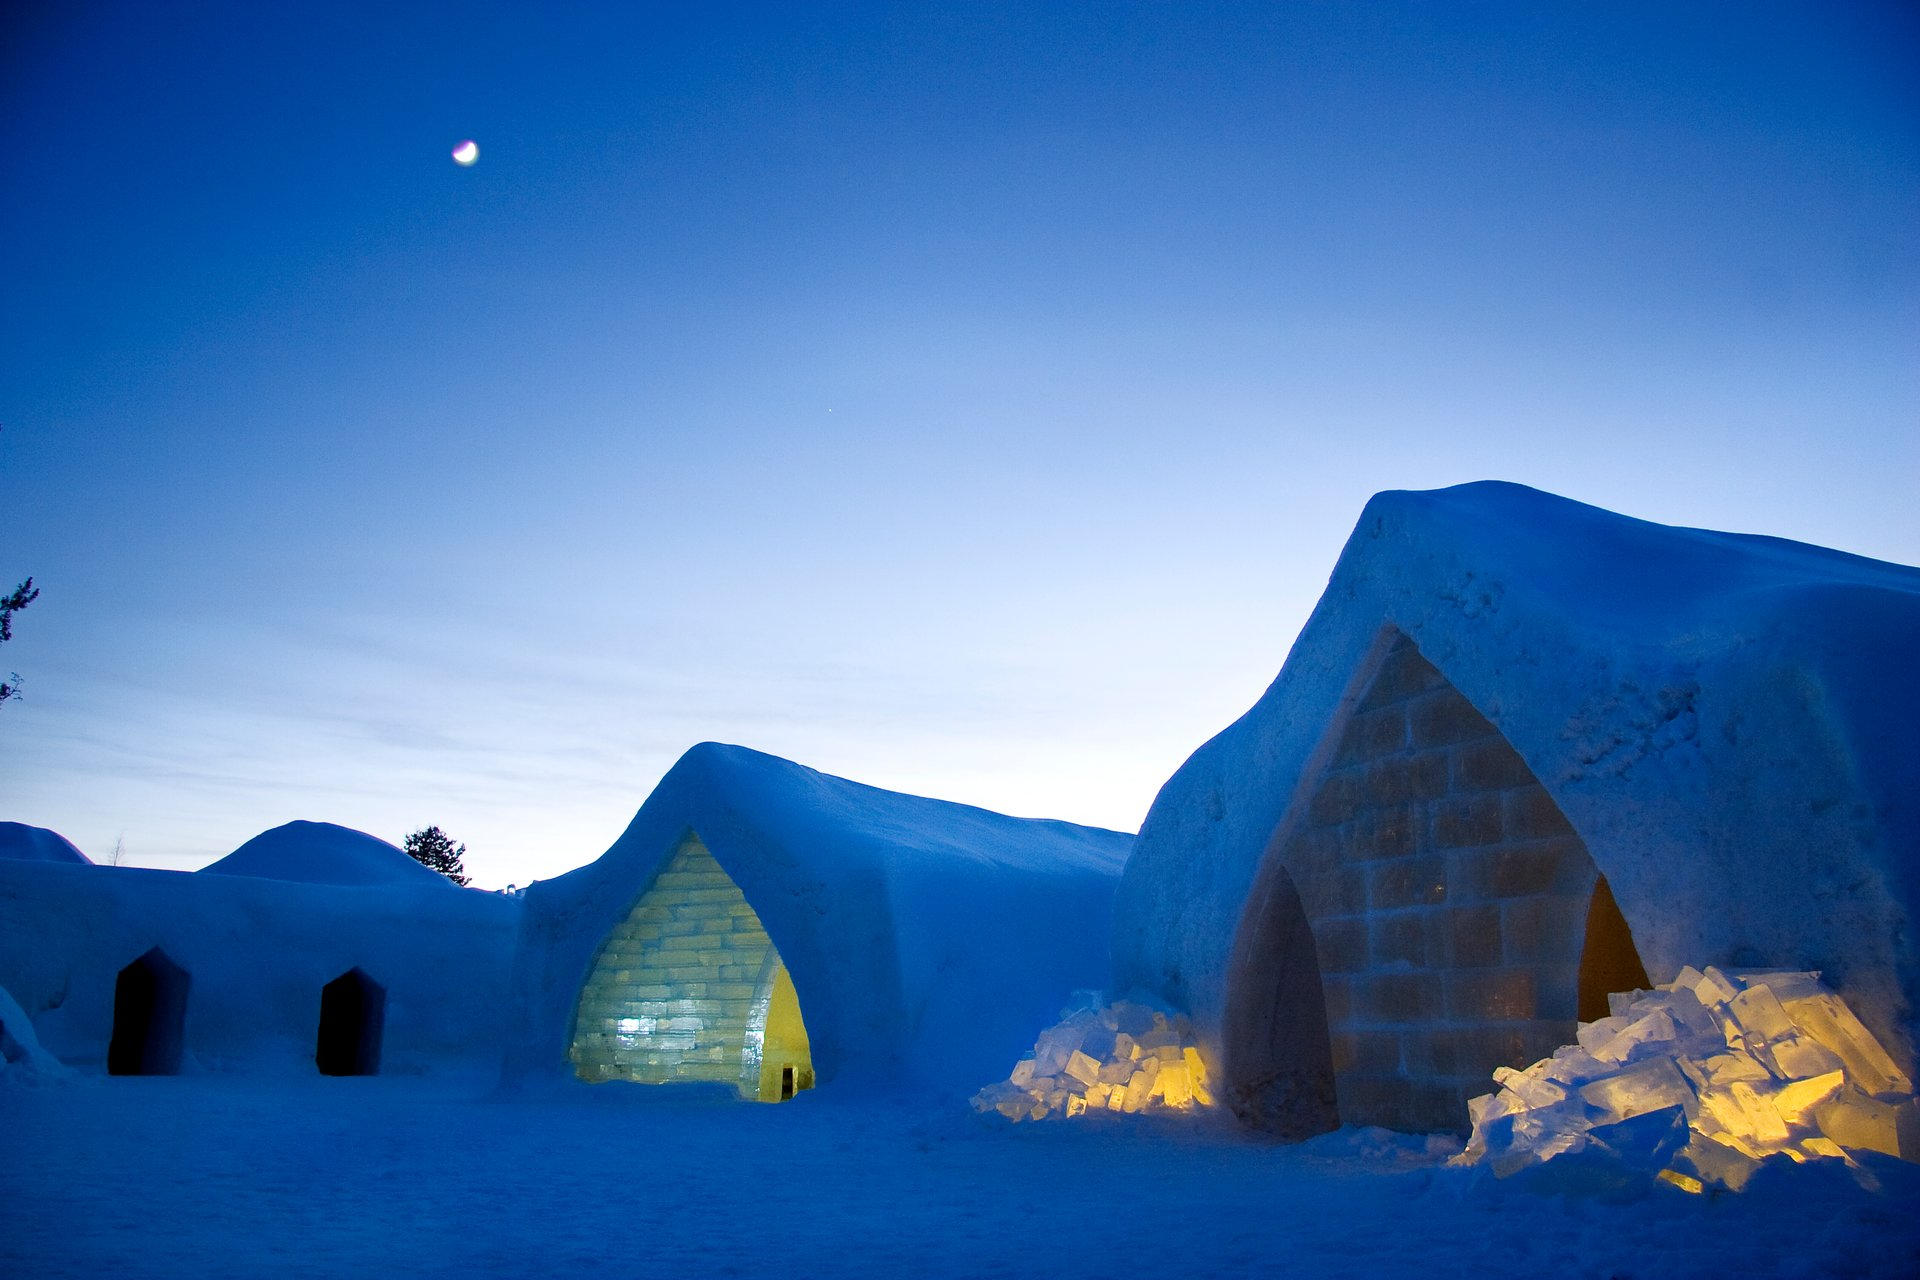 Best time for Snow & Ice Architecture in Finland 2019